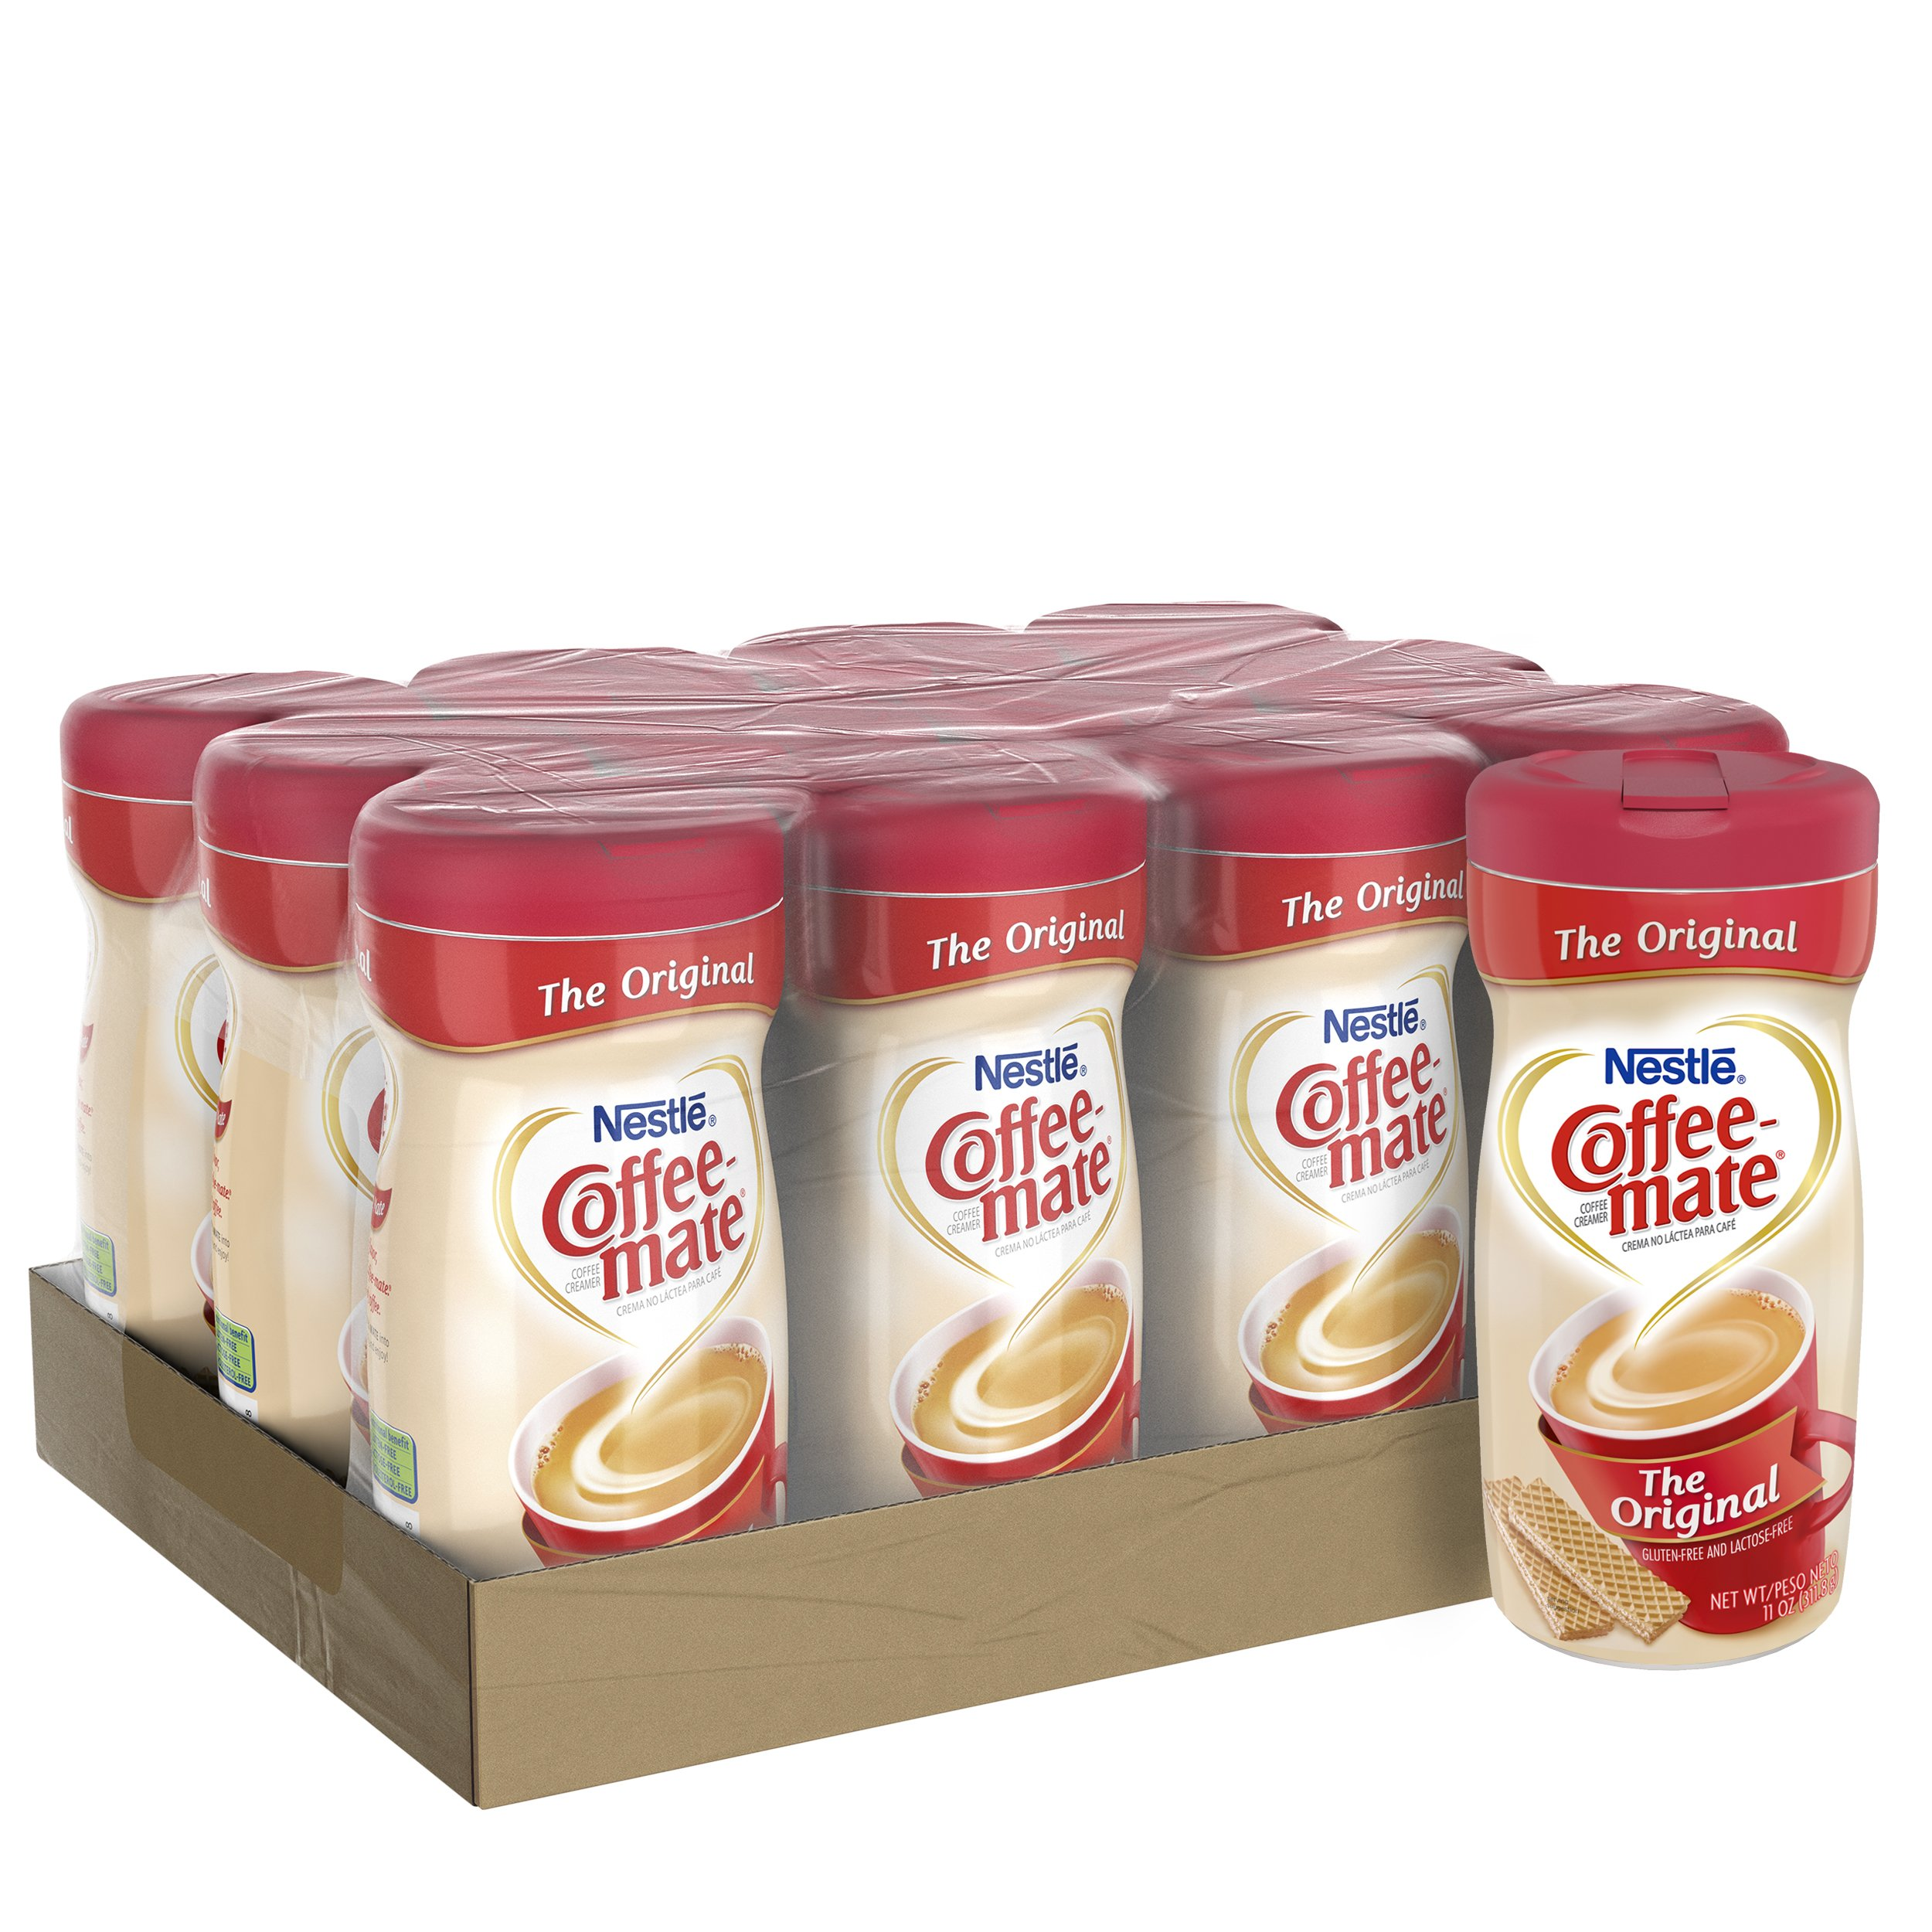 NESTLE COFFEE-MATE Coffee Creamer, Original, 11oz powder creamer, Pack of 12